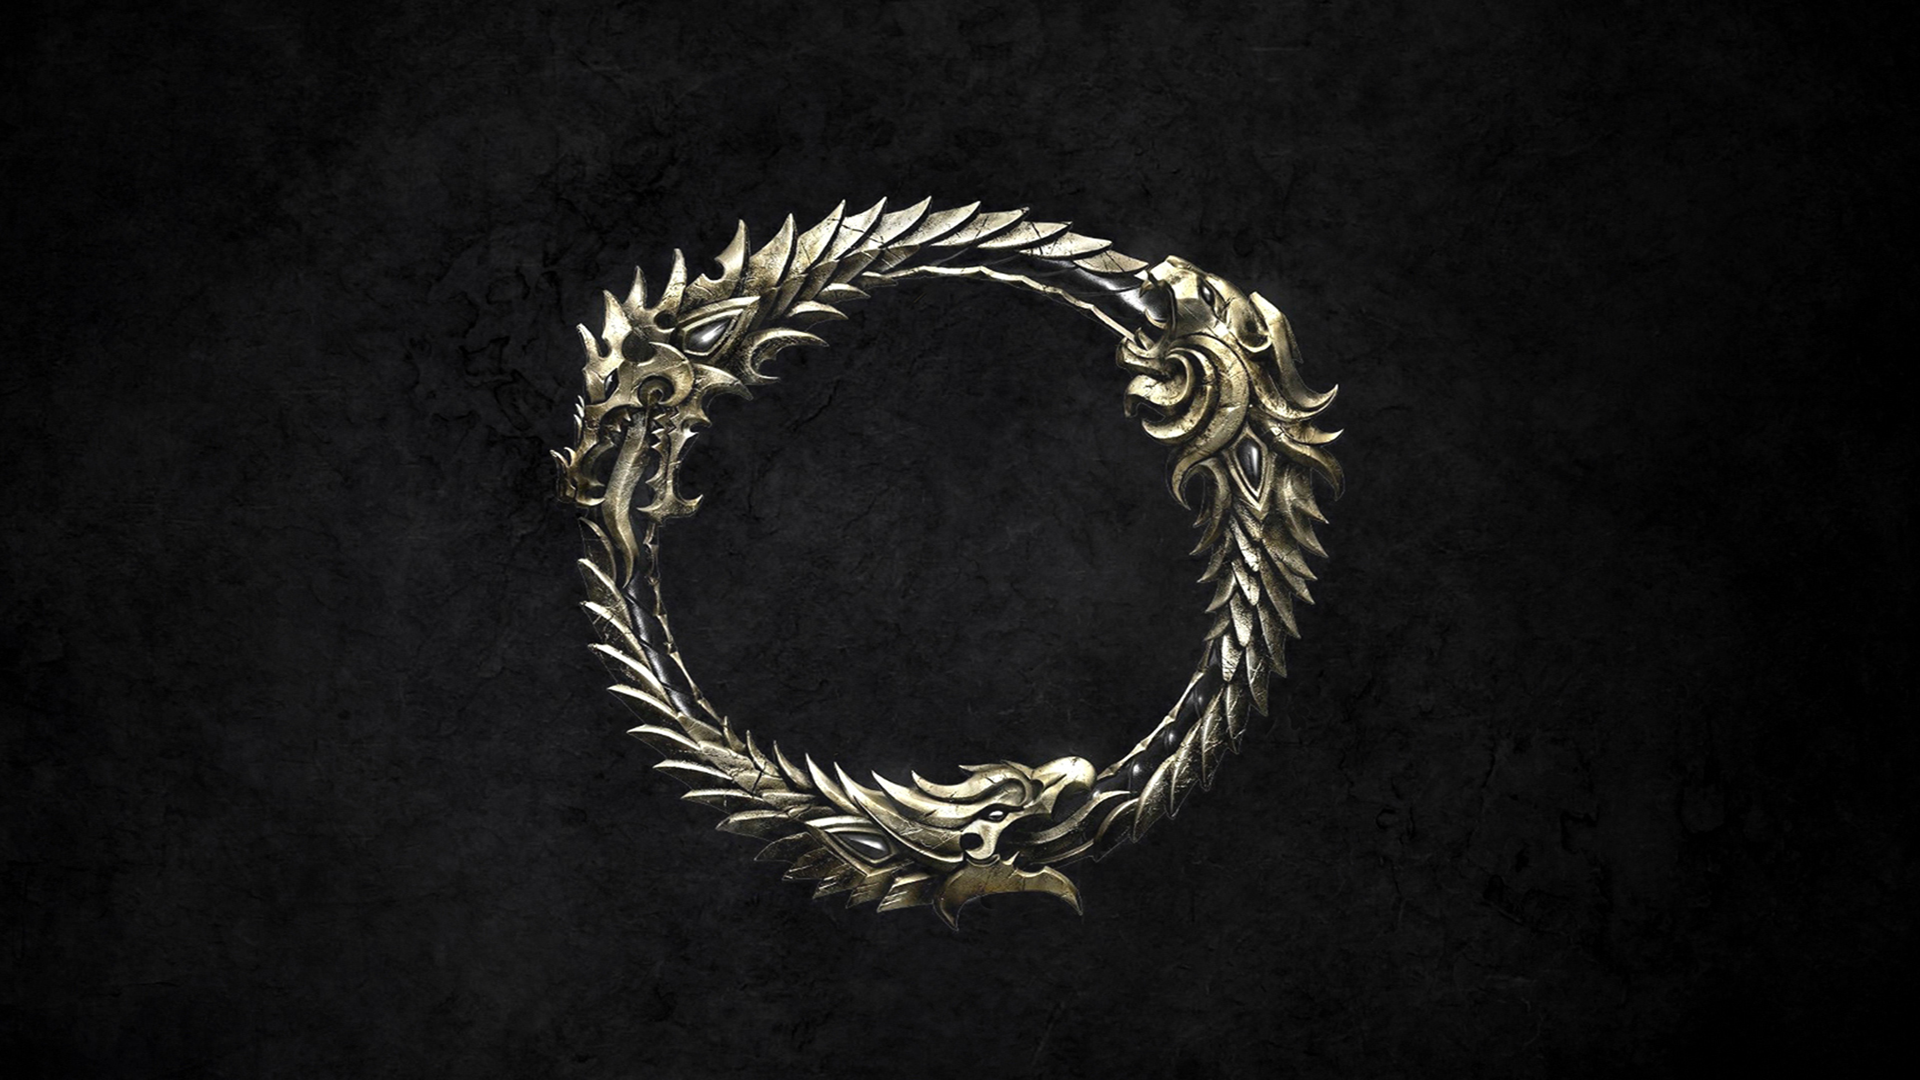 eso hd wallpapers amazoncouk appstore for android